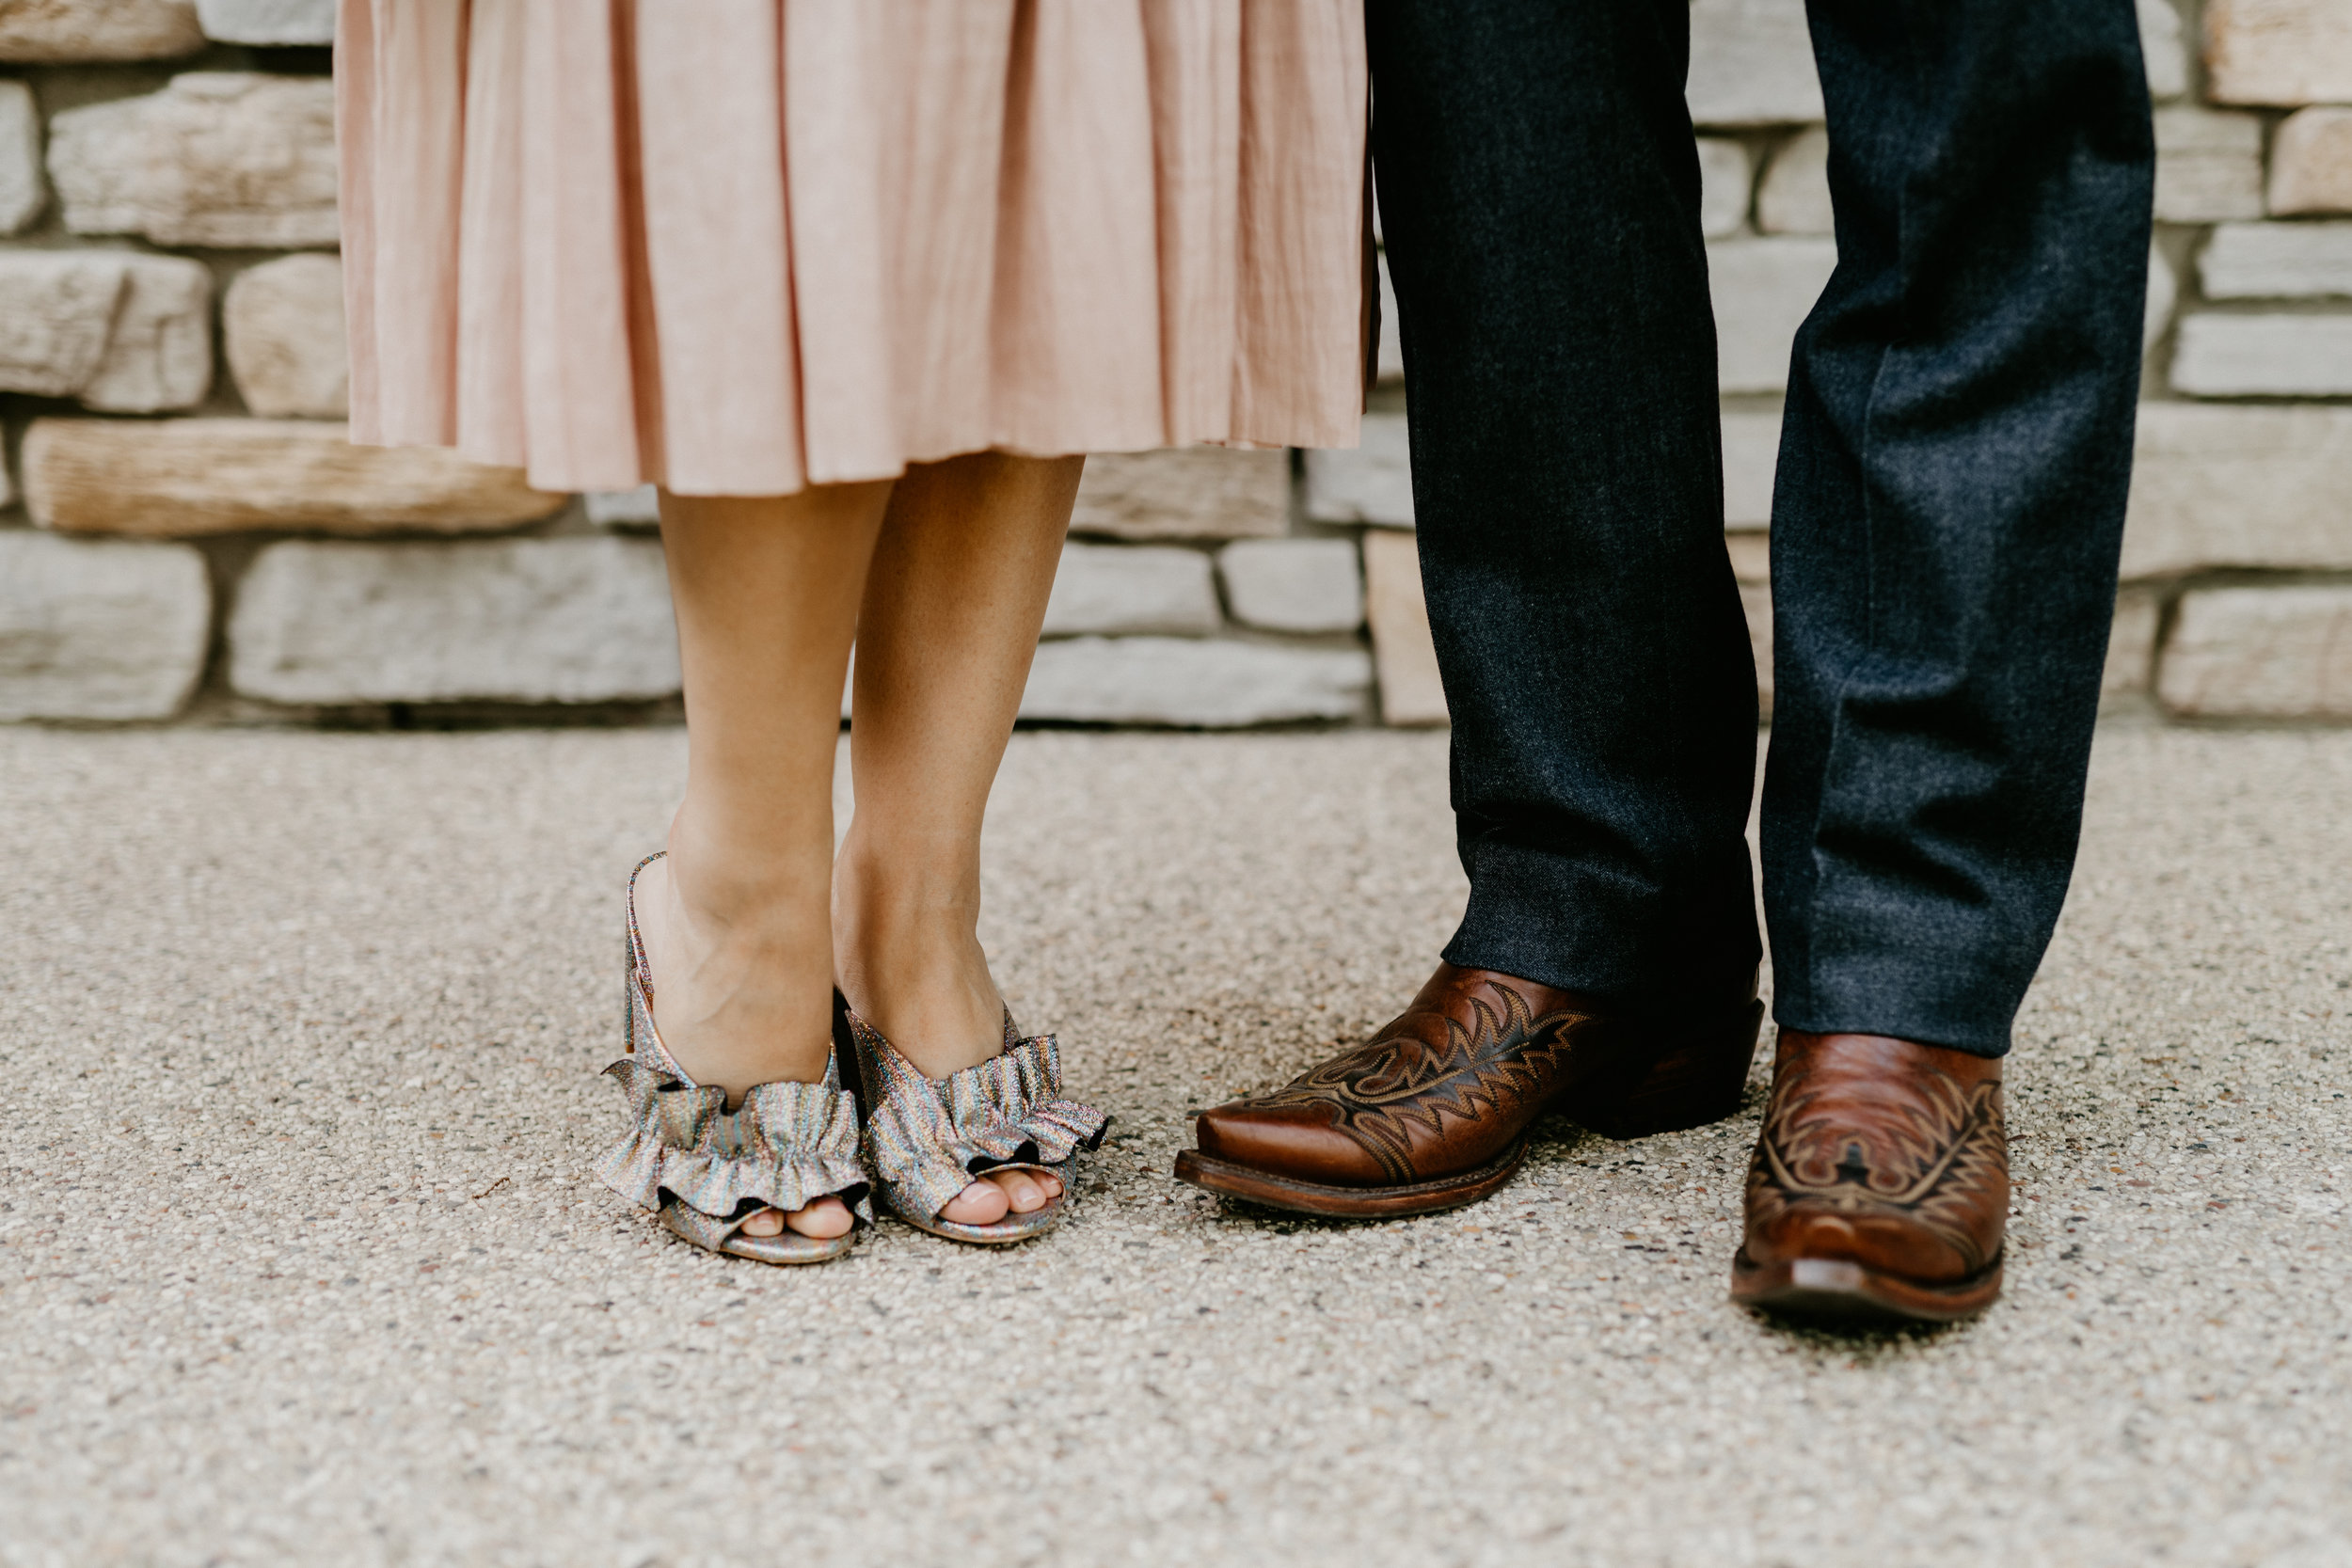 Bride and Groom Shoes Studio 29 Photography.jpg